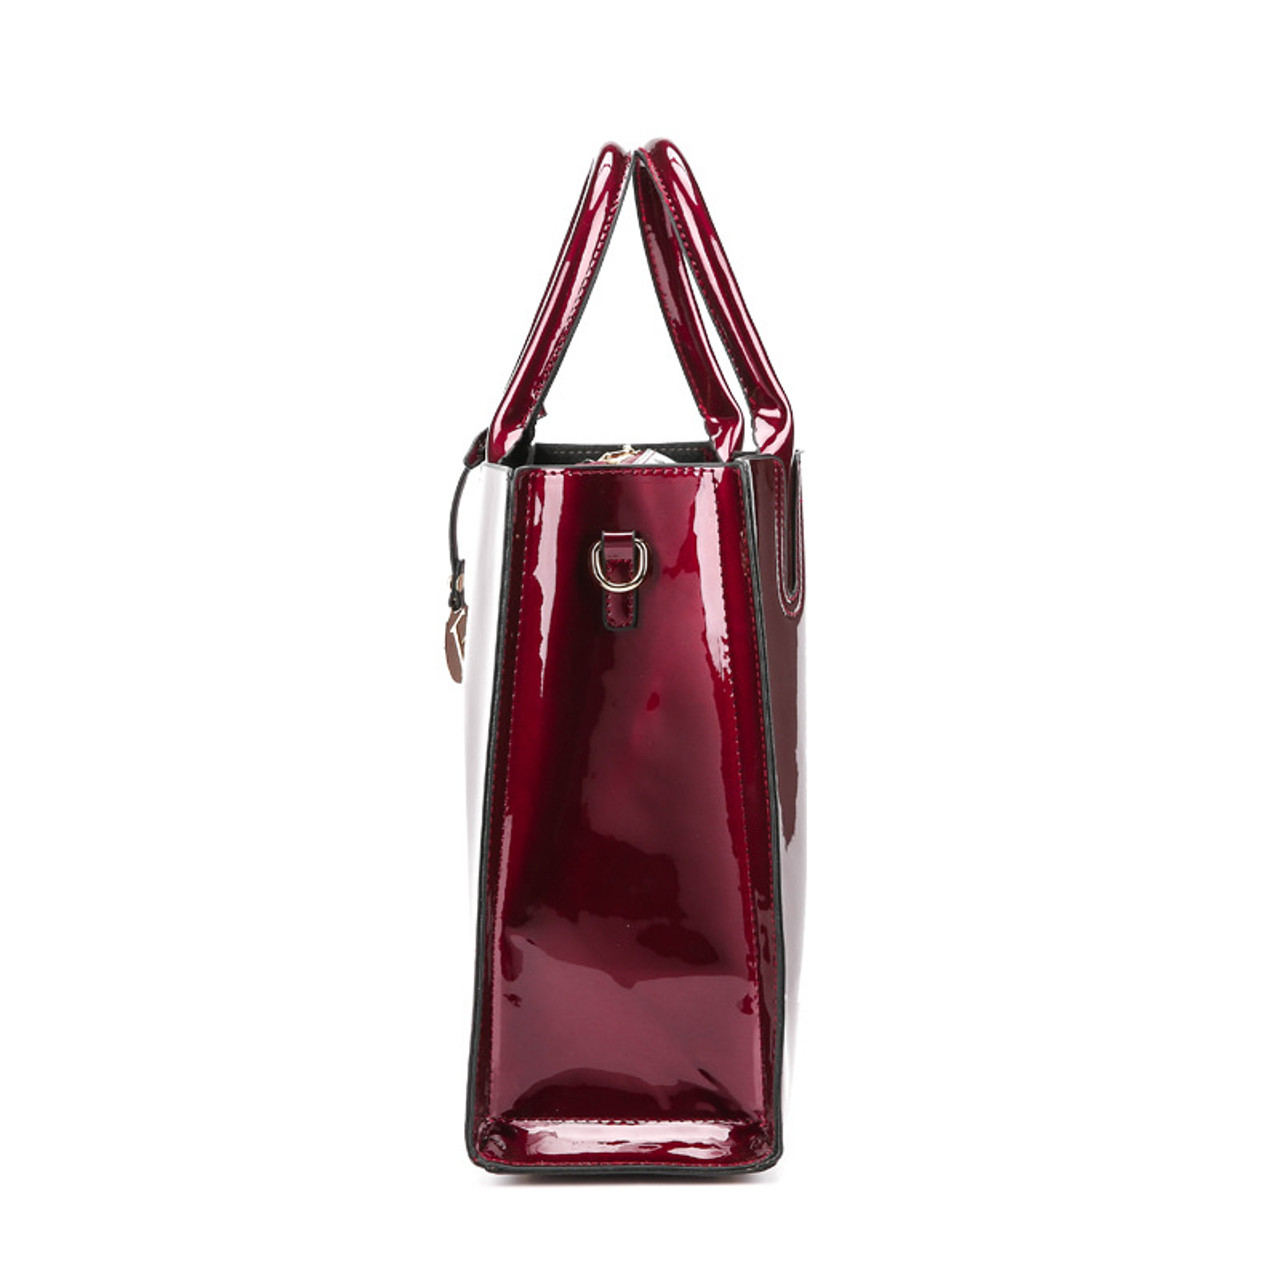 3f29fd4b356 ... Bonsacchic Red Patent Leather Tote Bag Handbags Women Famous Brands  Lady s Lacquered Bag Red Handbag for ...